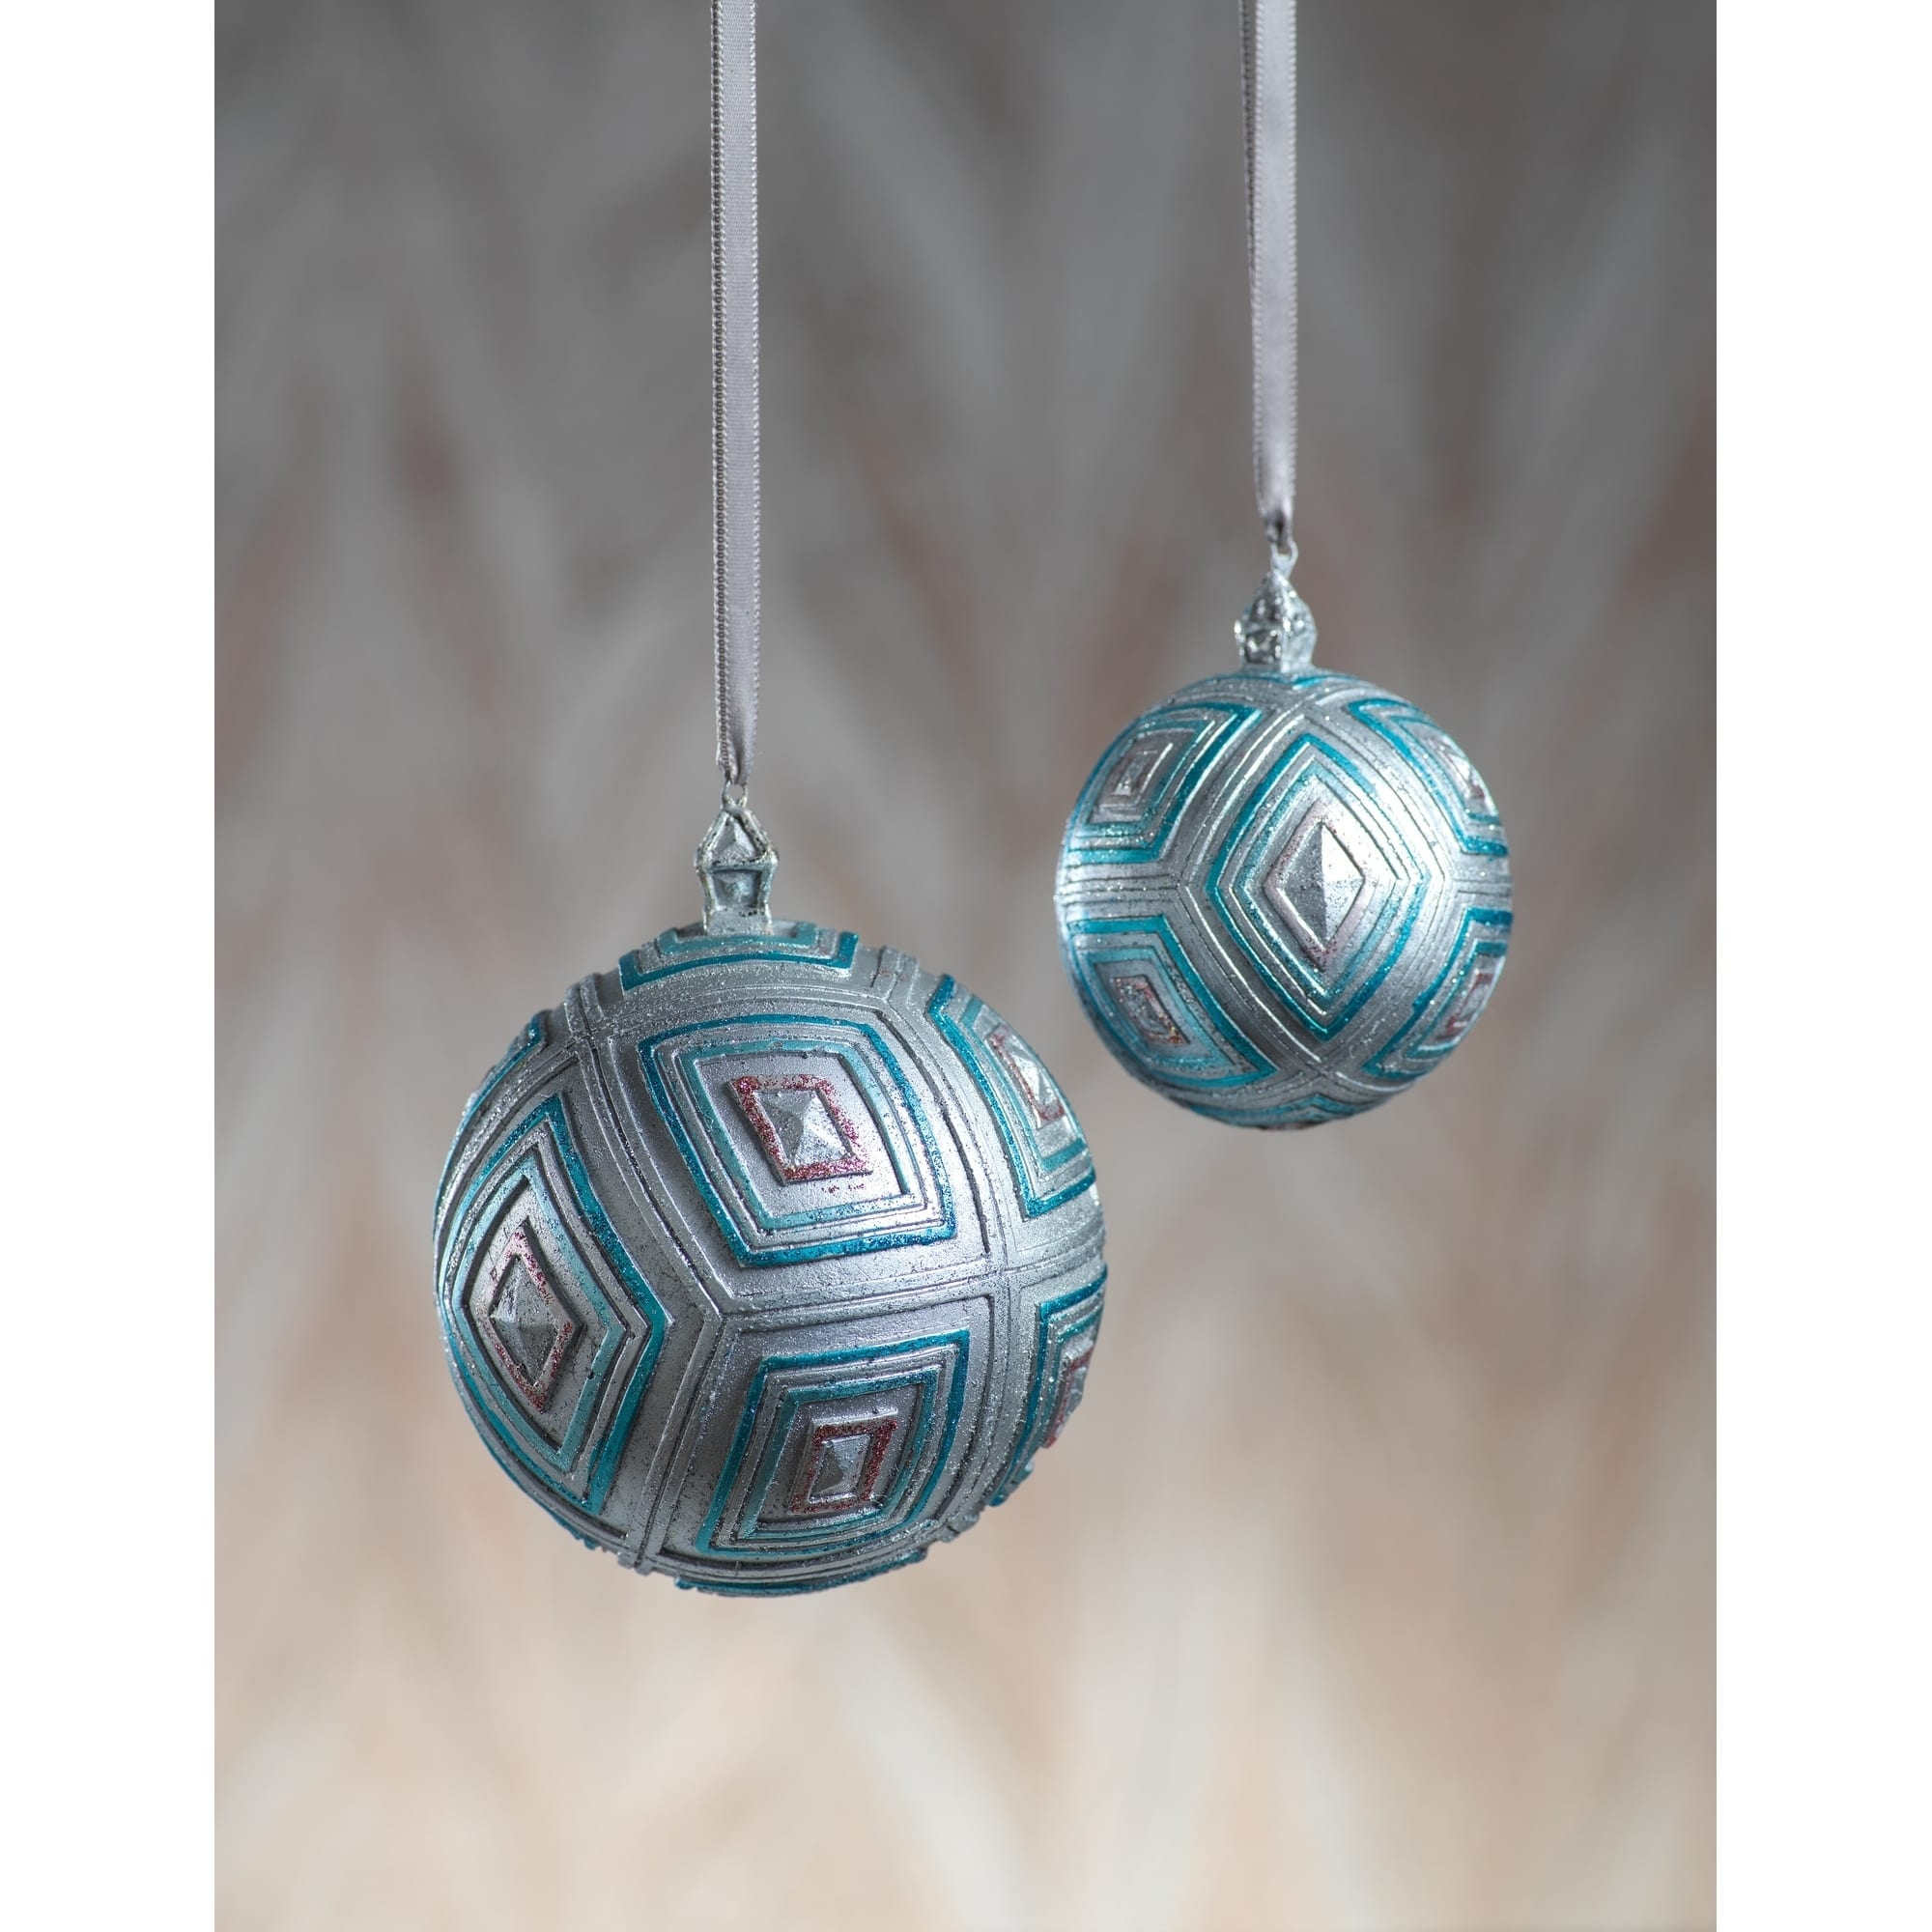 Buy Christmas Ornaments Online at Overstock | Our Best ...